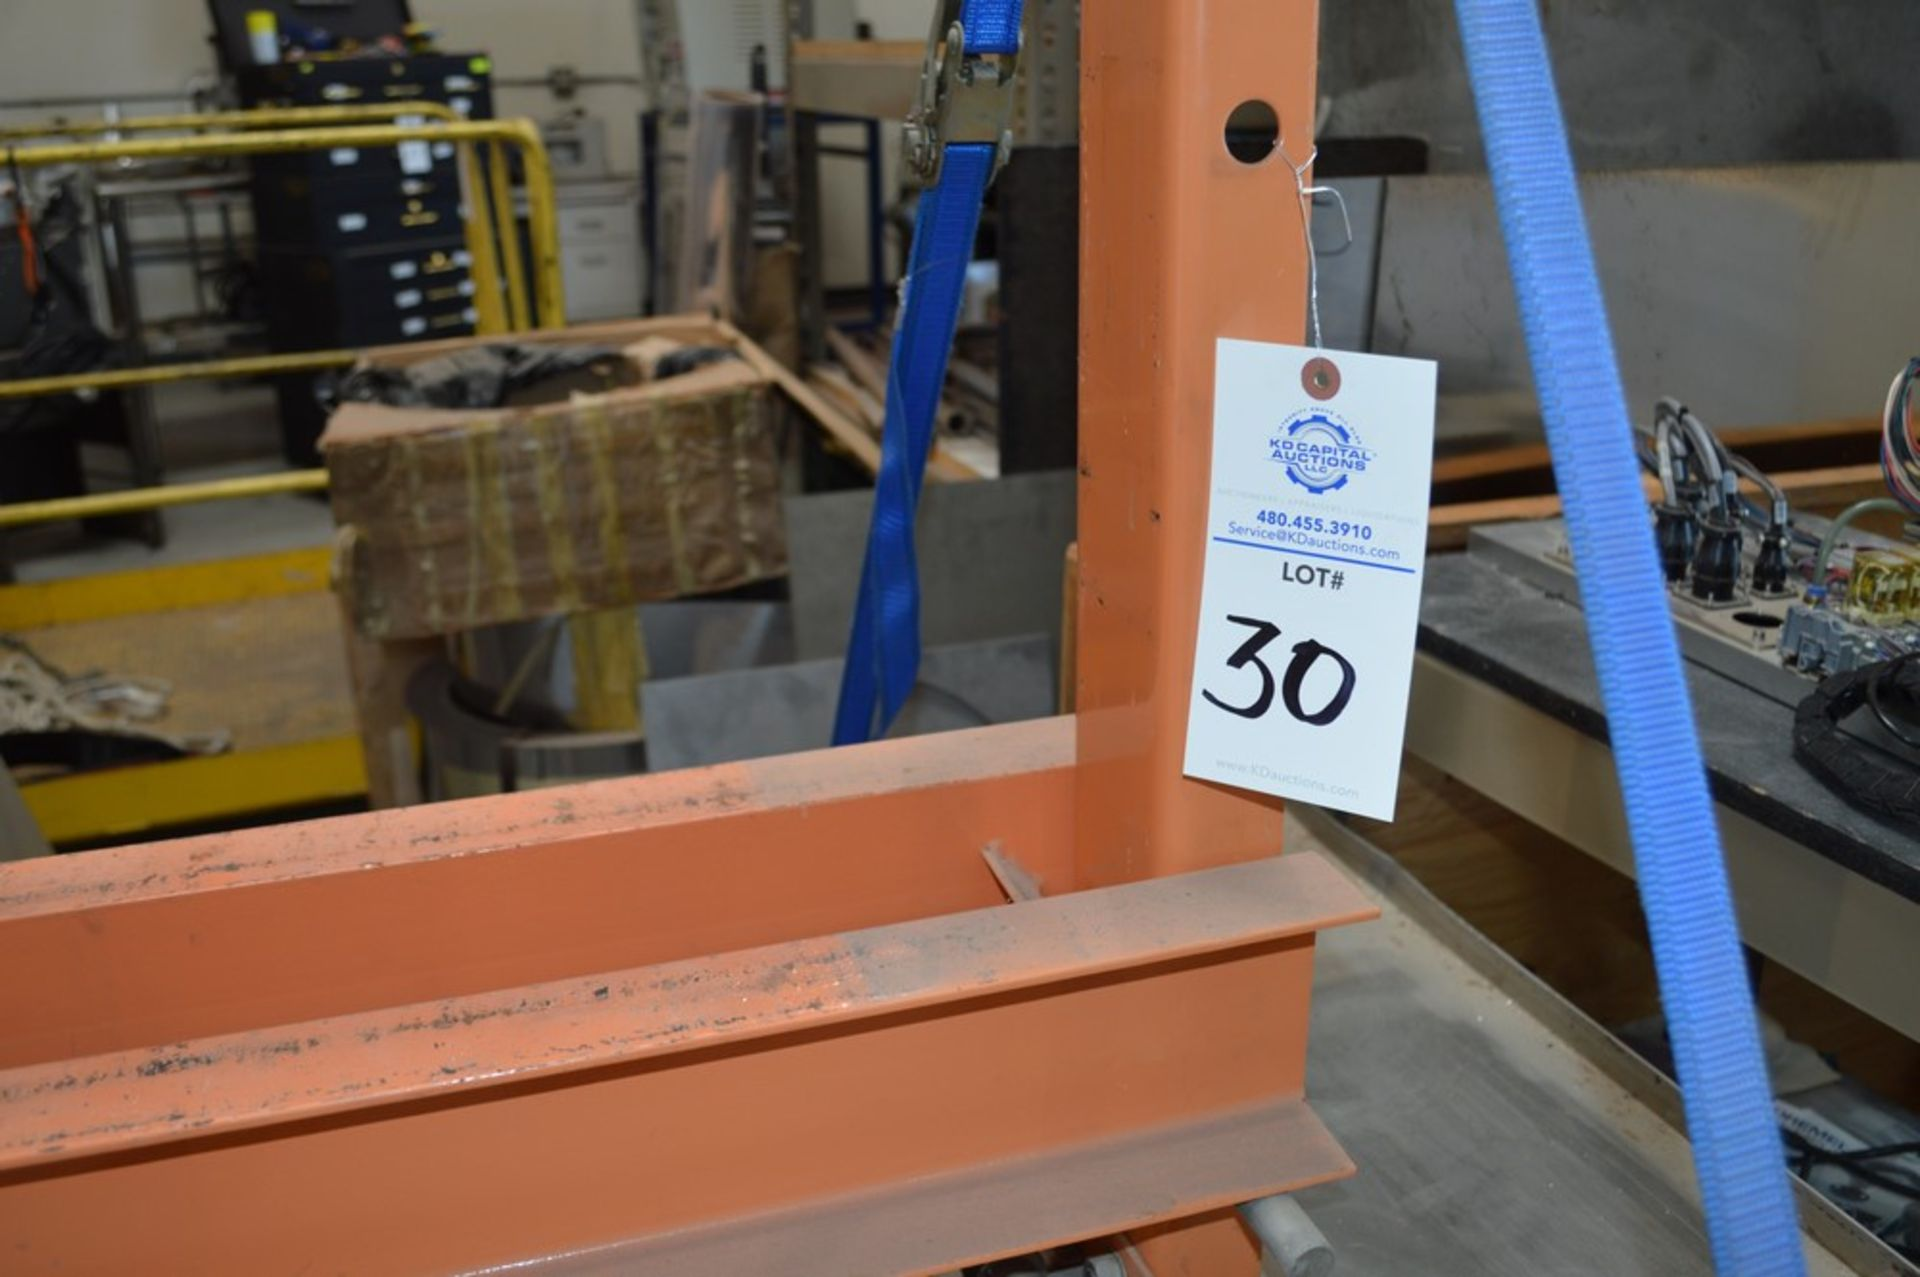 Central Hydraulics 20 Ton shop press, small steel table - Image 2 of 4